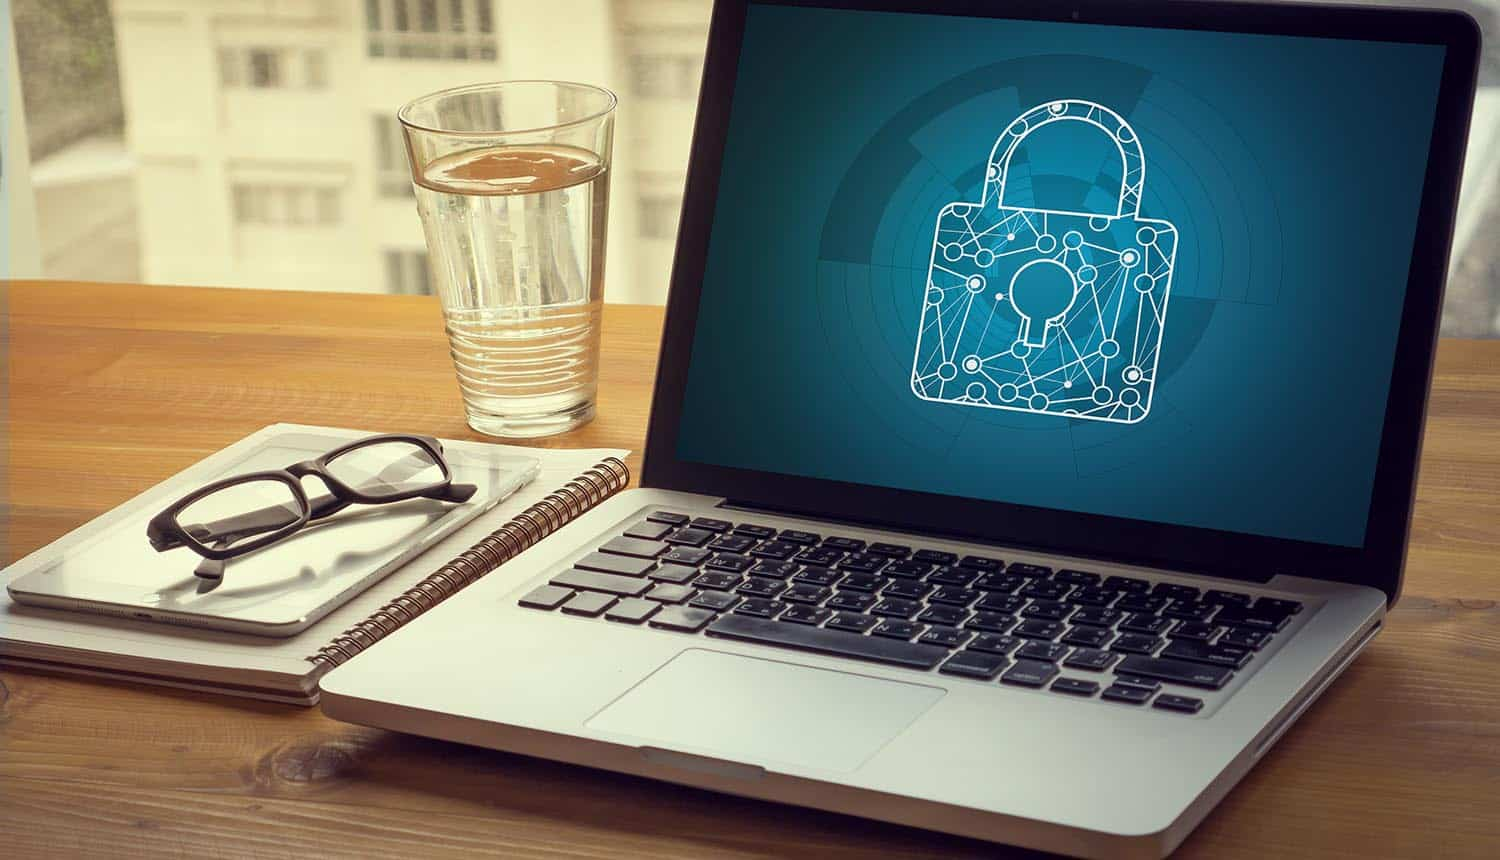 Padlock icon on laptop screen showing 70% of presidential candidates failing at consumer privacy as shown in OTA report